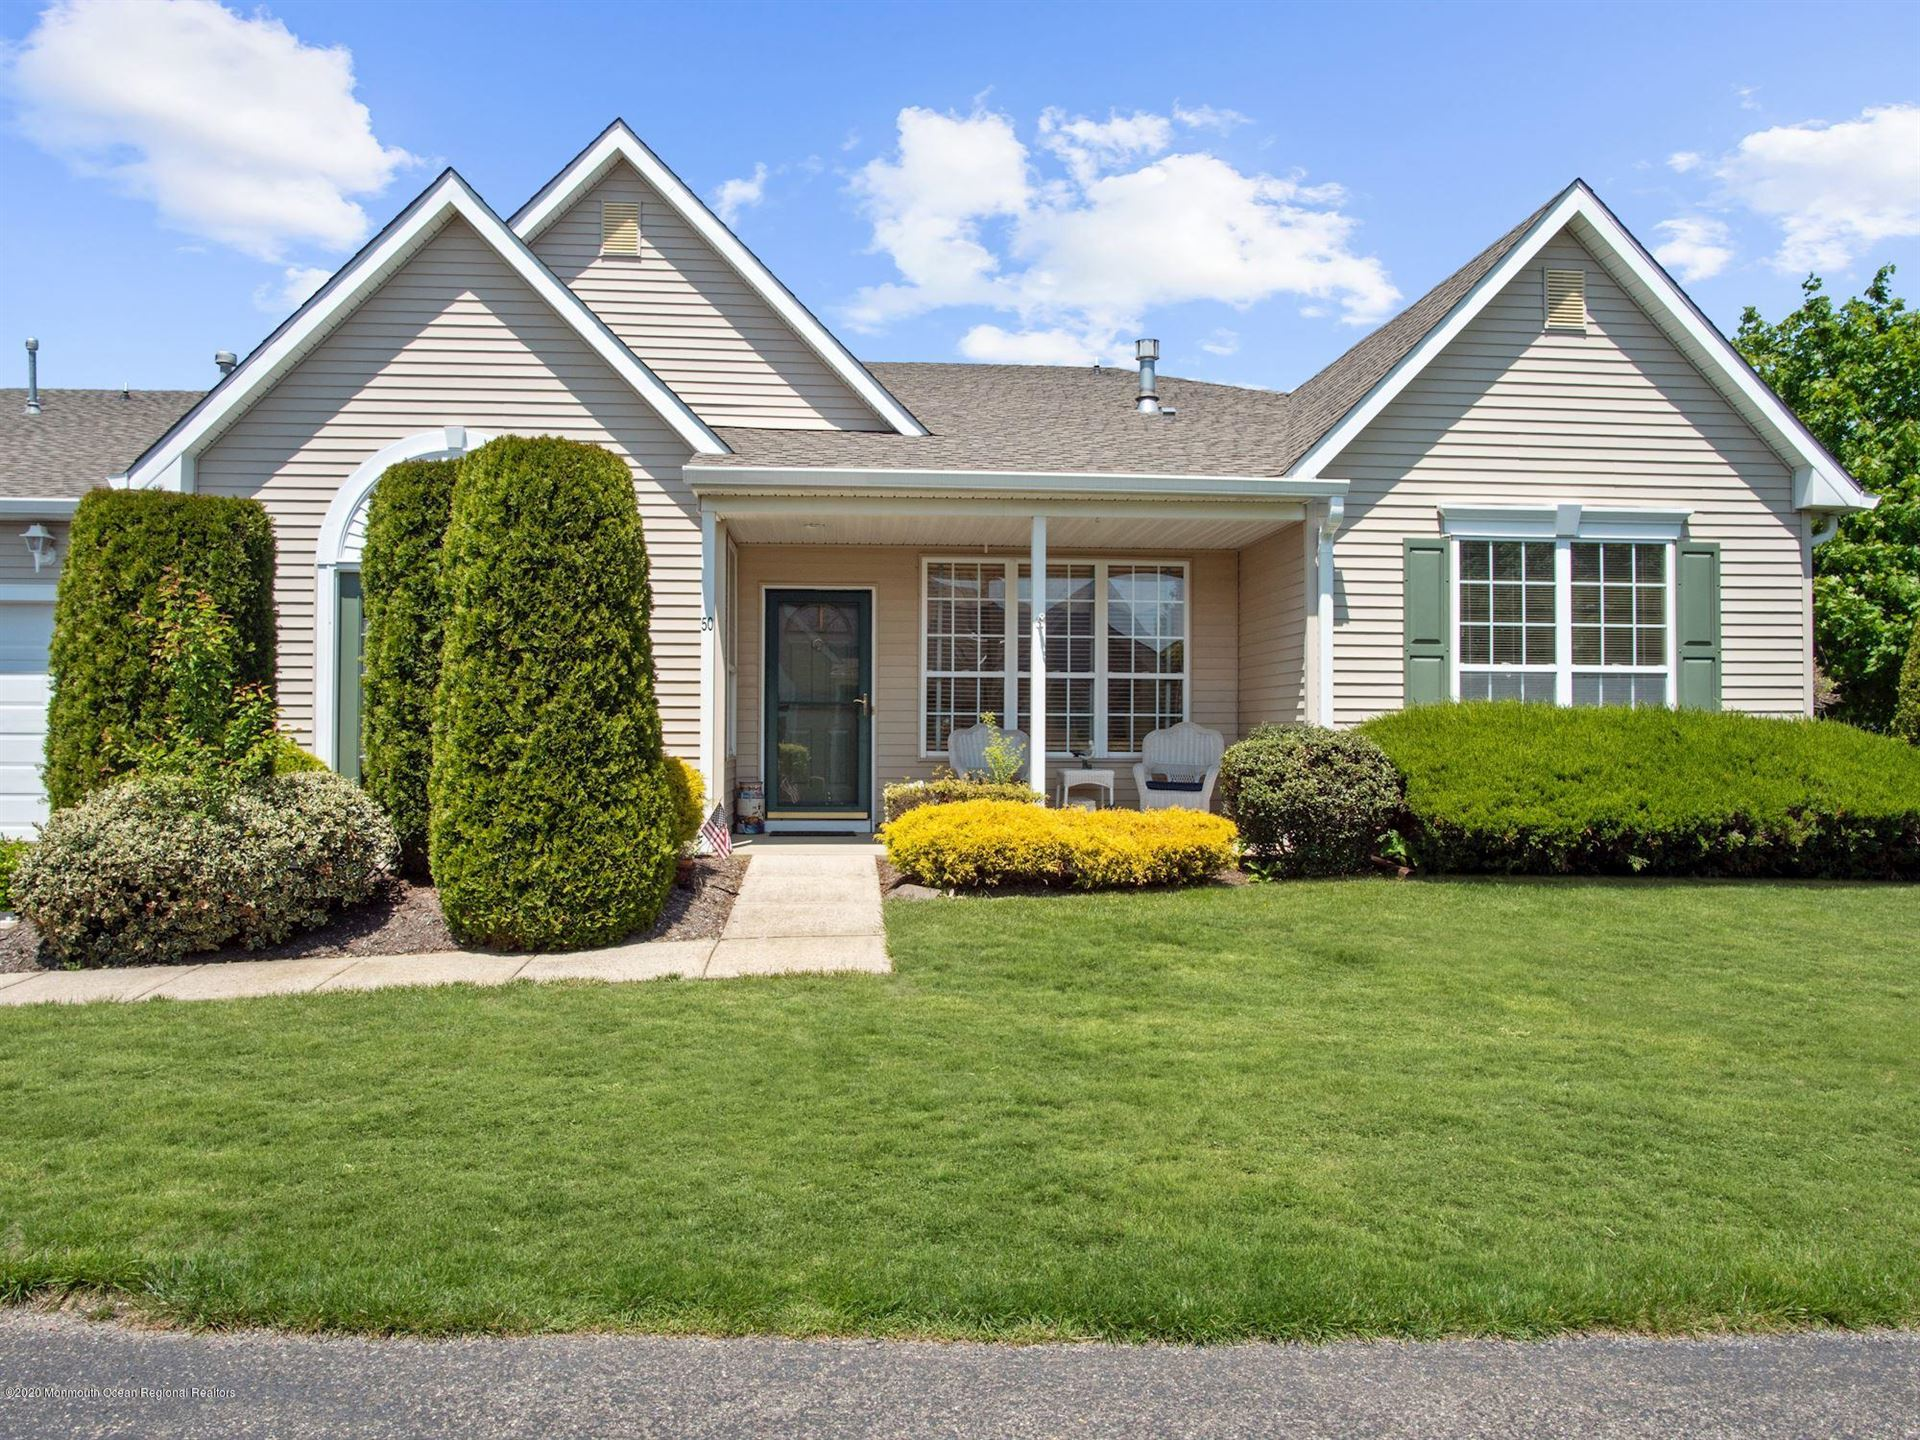 50 Deerchase Lane #1001, Lakewood, NJ 08701 - #: 22014478